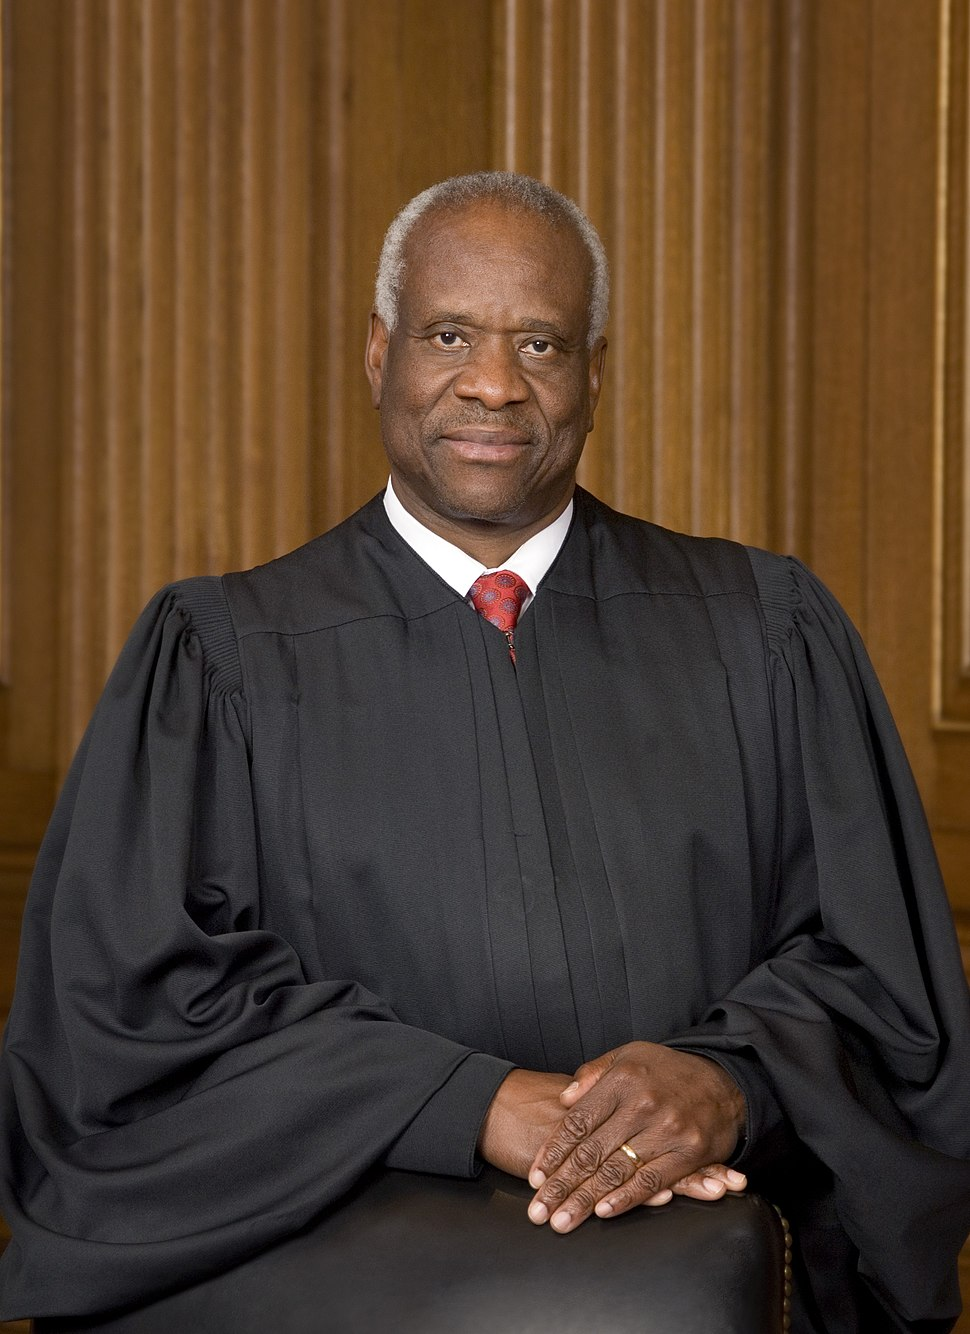 Clarence Thomas official SCOTUS portrait